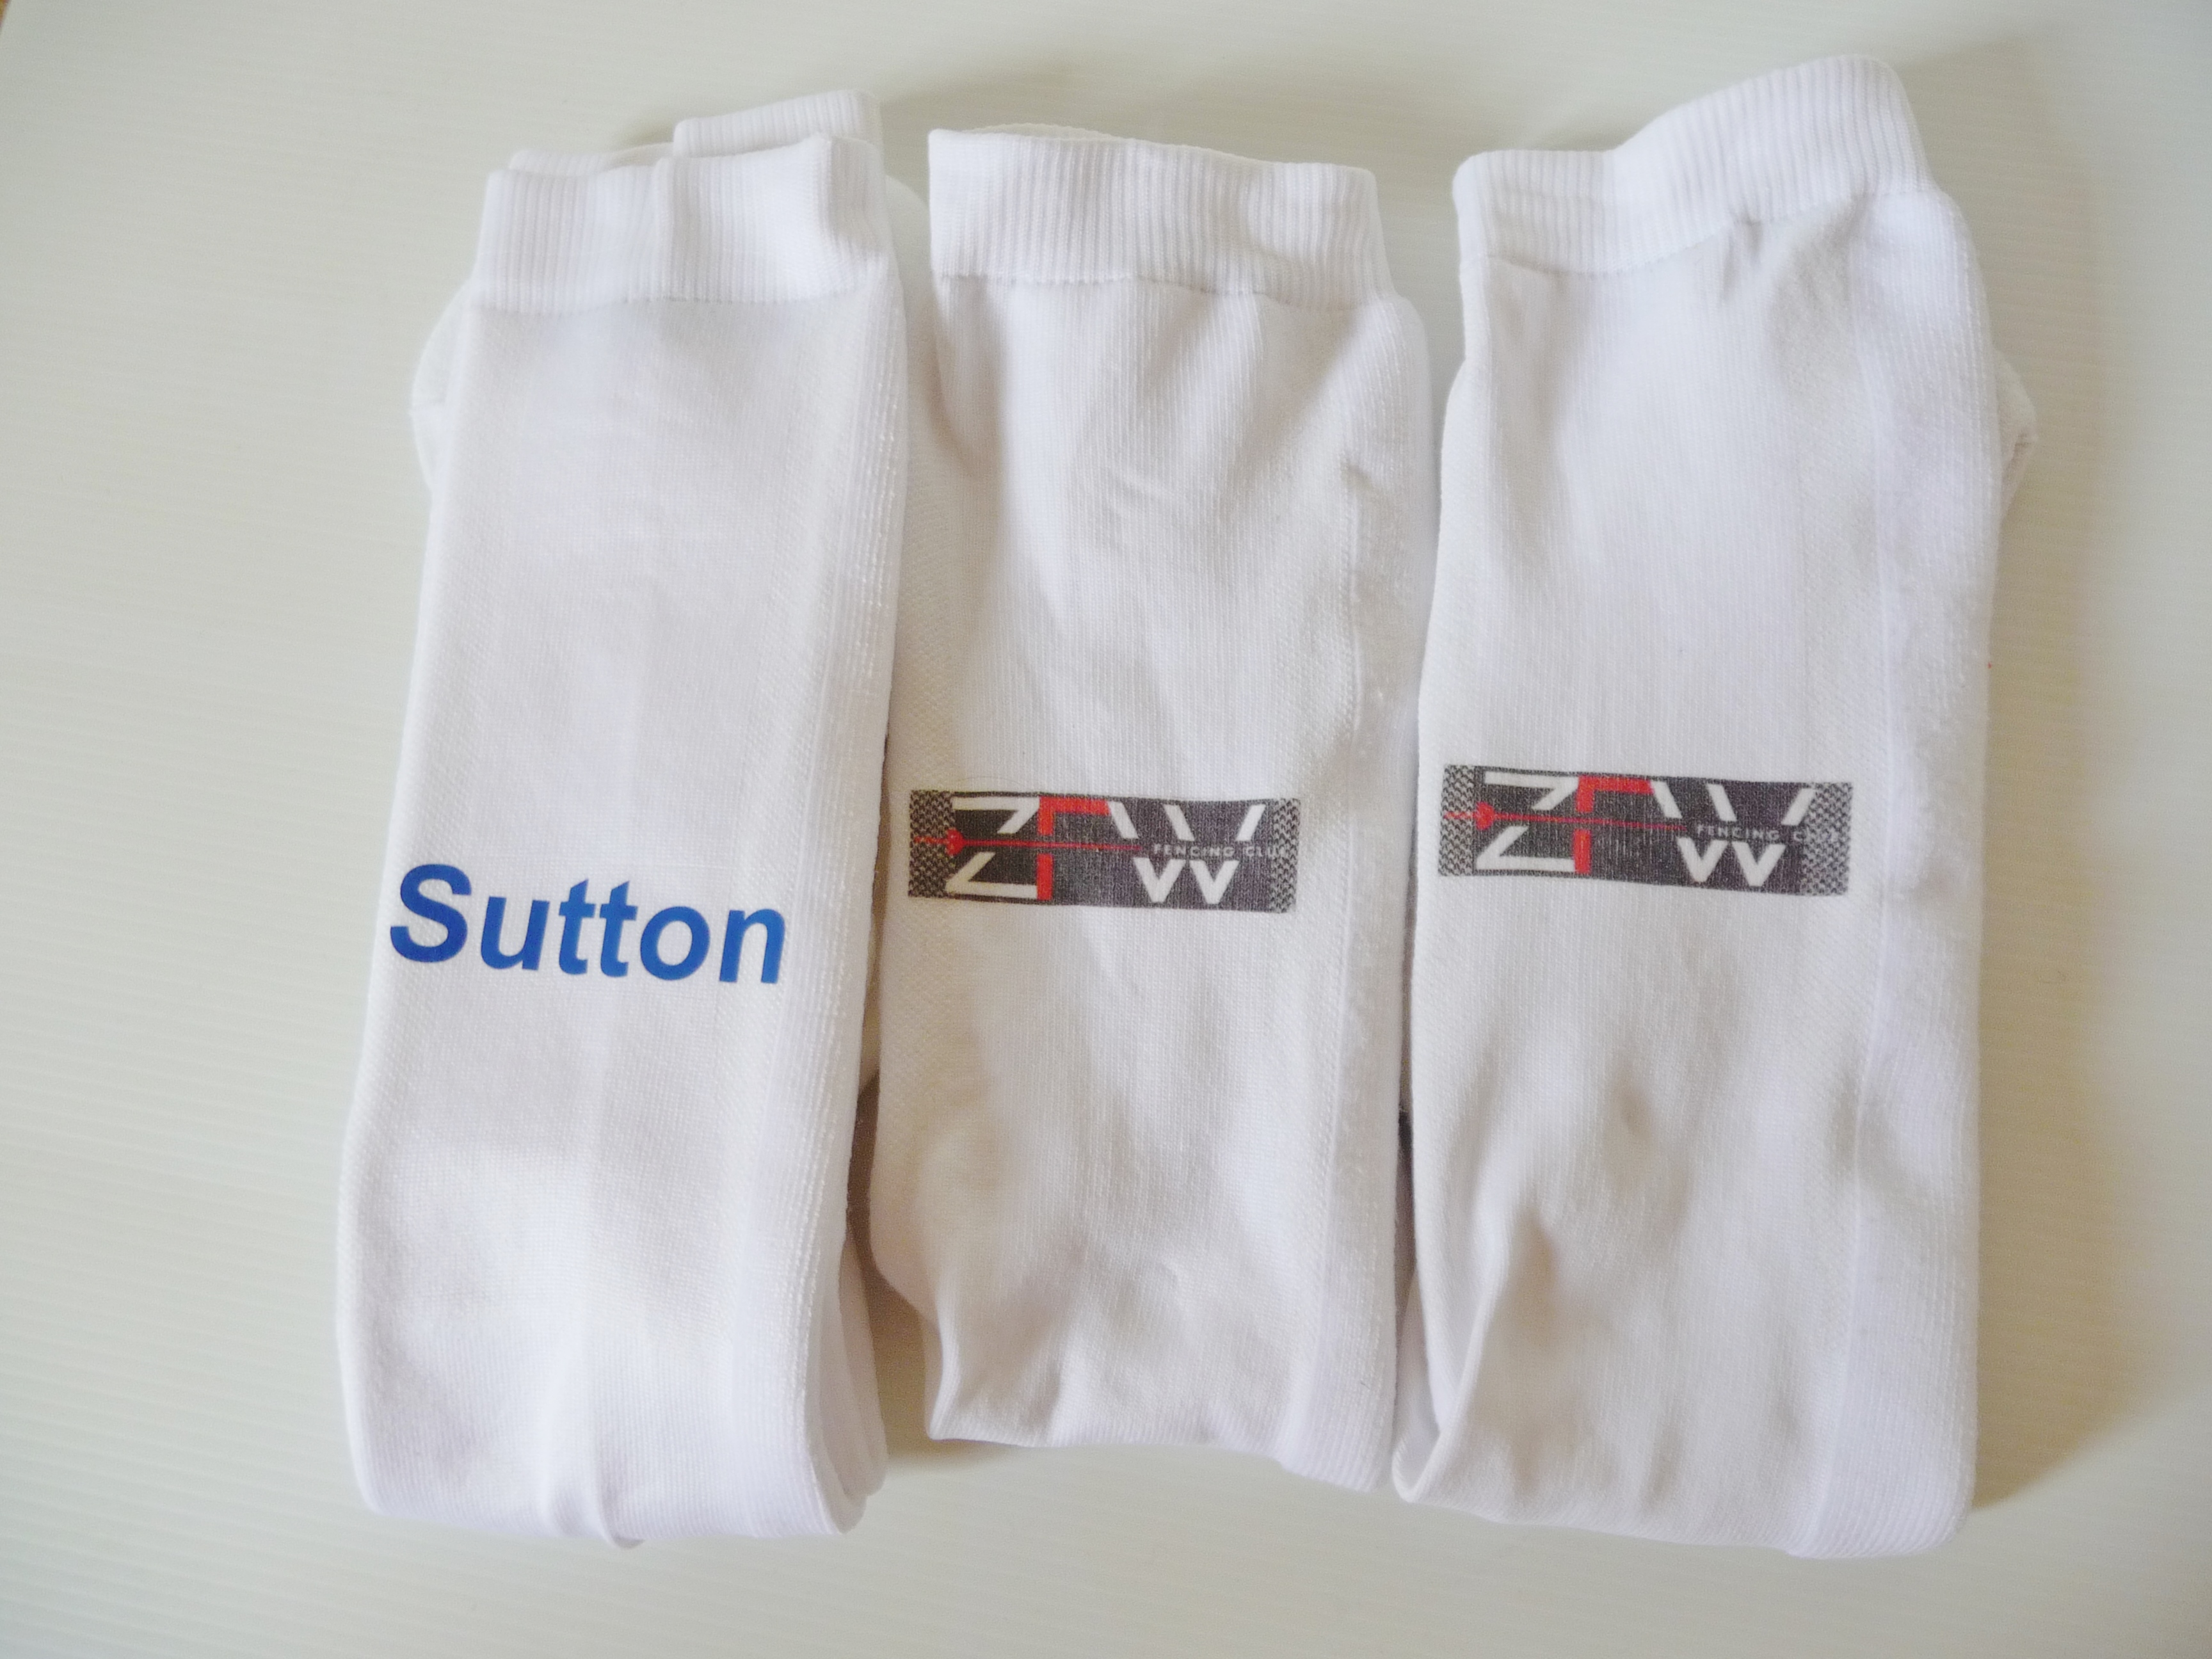 Fencing socks personalised ie name, flag, club logo